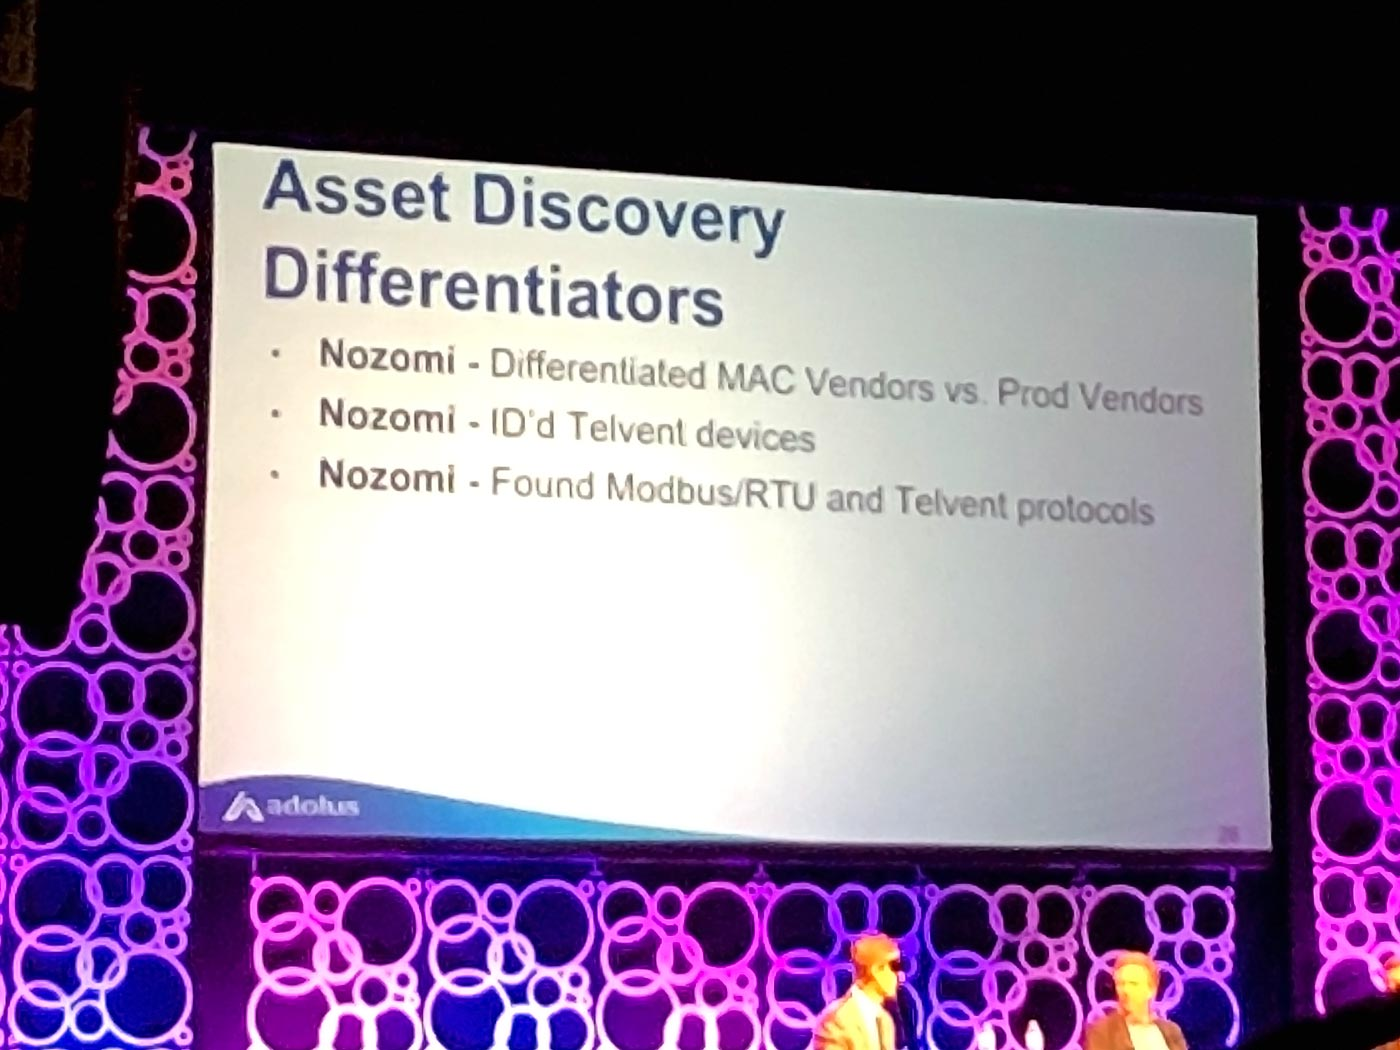 Asset-Discovery-Differentiators